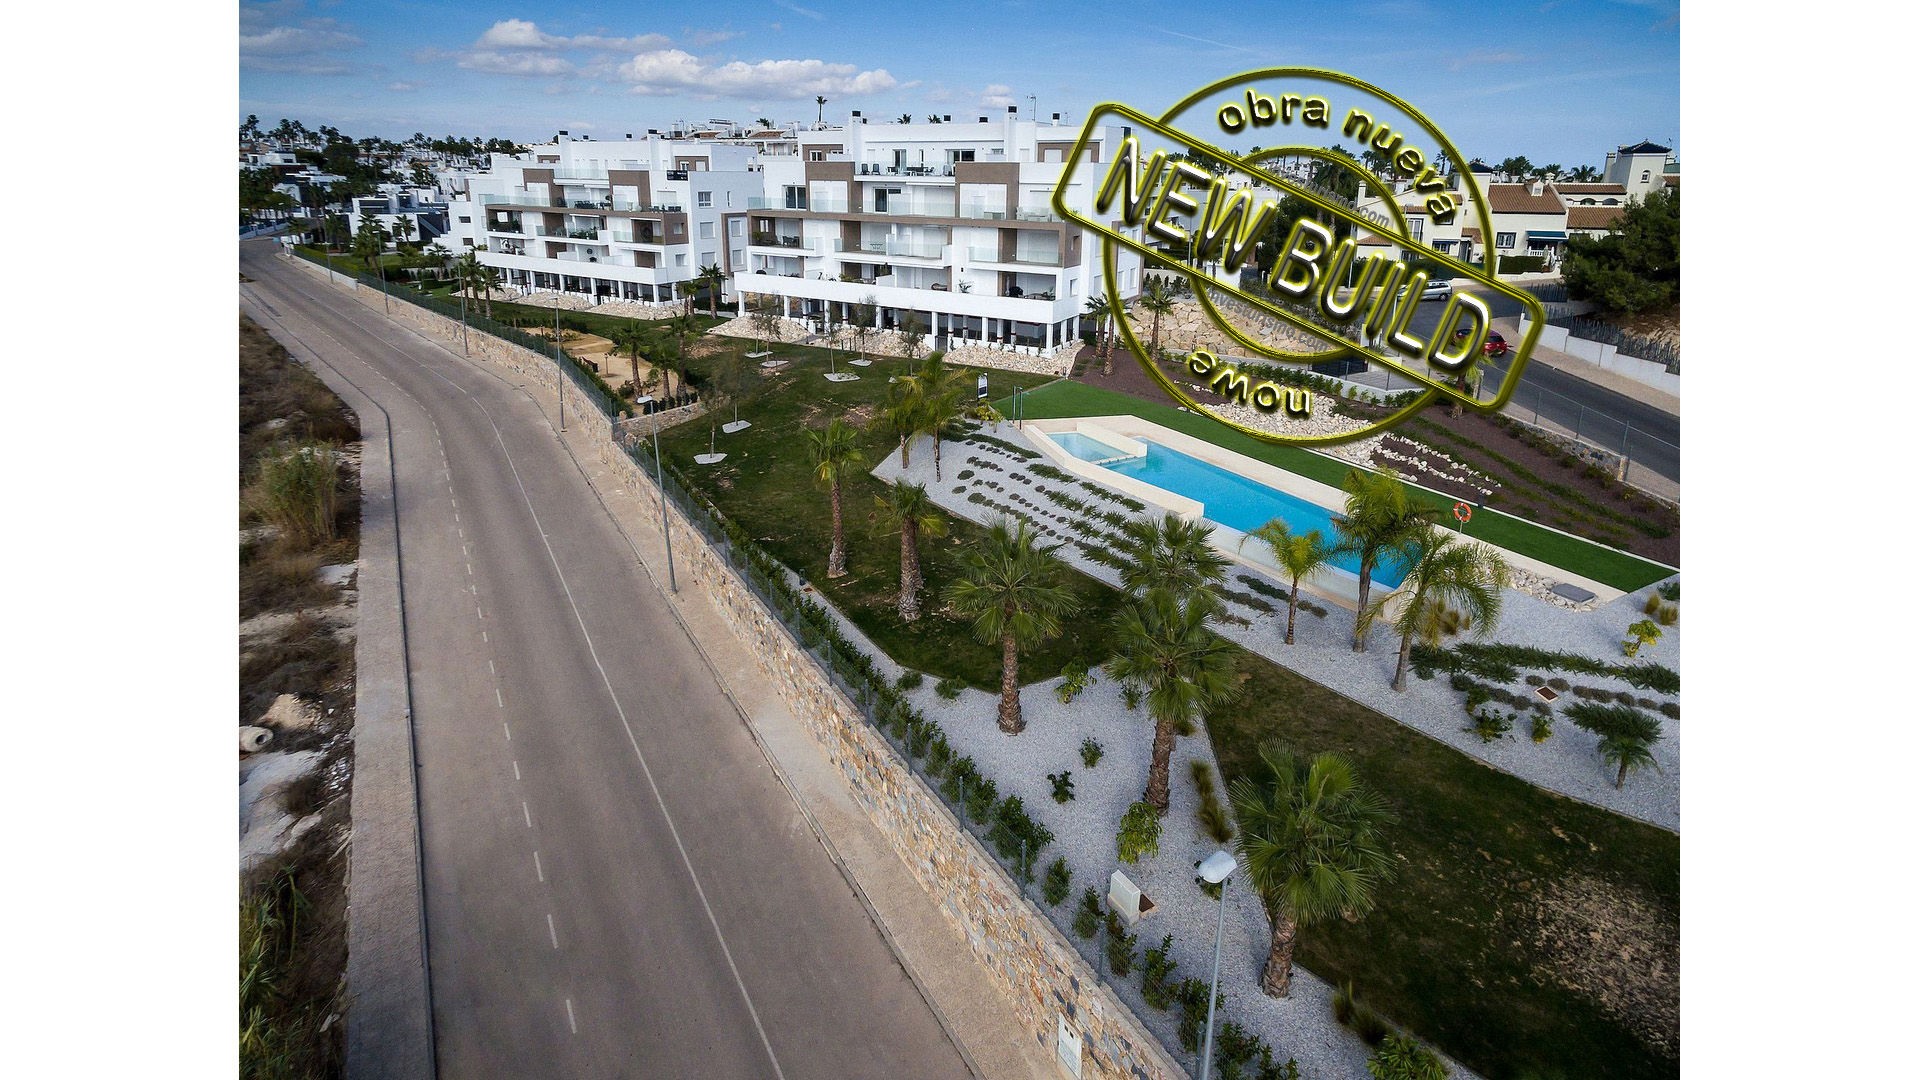 New Build apatments 2-3 bedrooms in Orihuela Costa